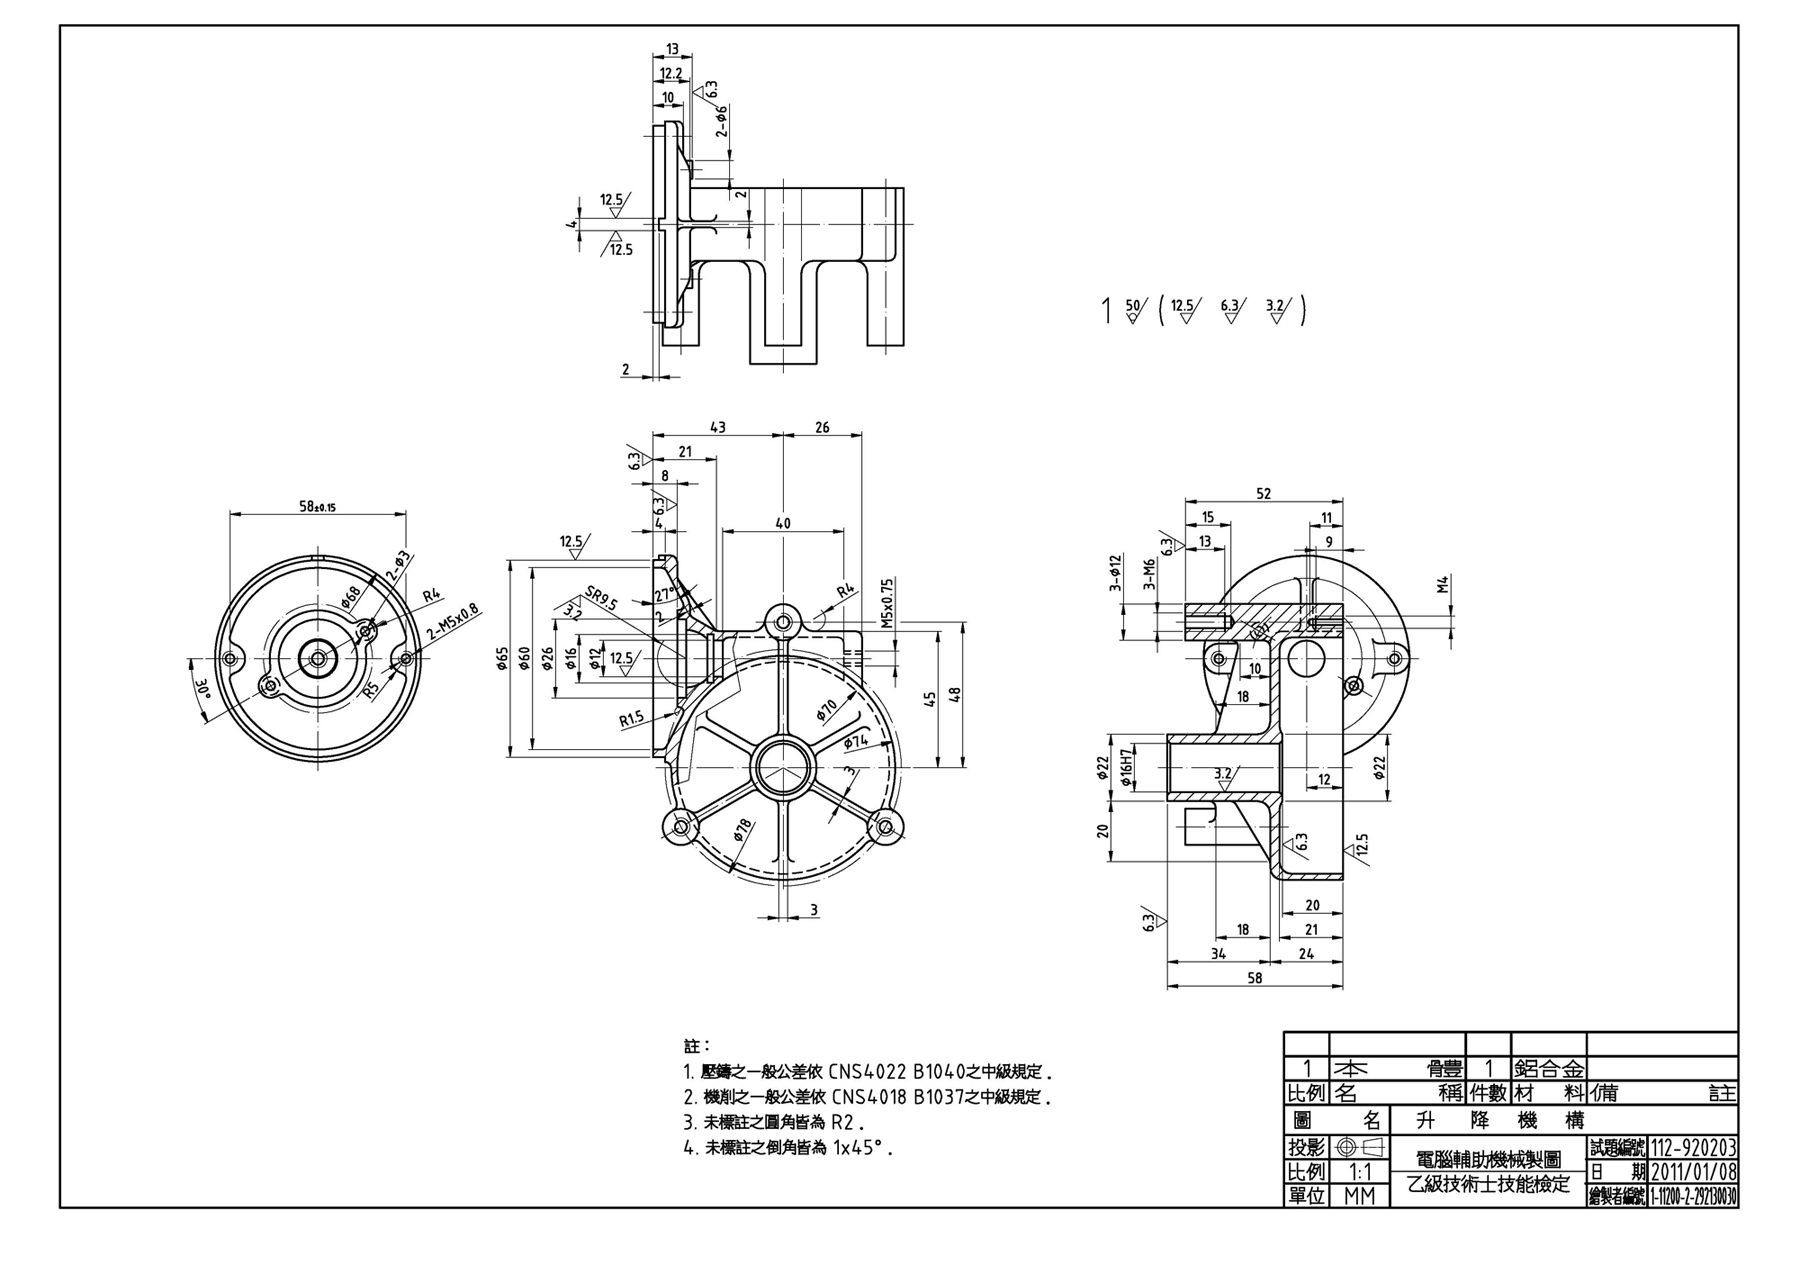 Index1 additionally Nuova Pagina 1 as well Williams Pinball Schematics also Kur a also E8161af5 E8b8 4179 A736 30b579efd276. on index1